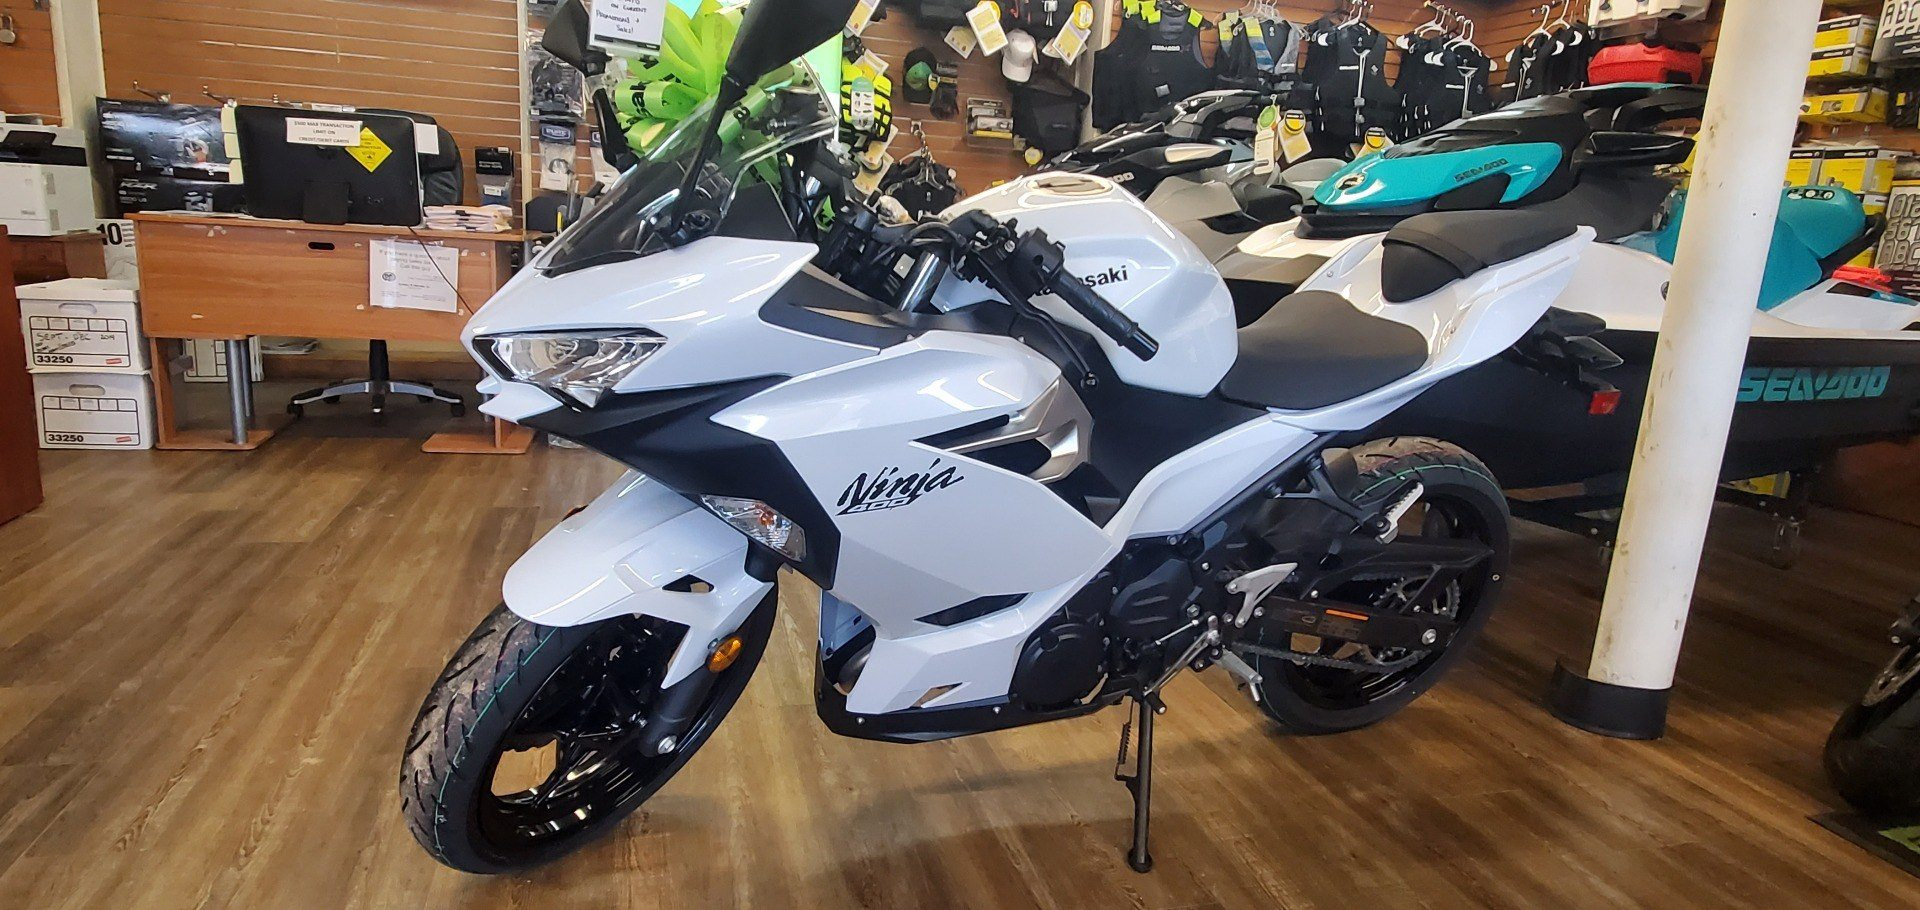 2020 Kawasaki Ninja 400 in Ledgewood, New Jersey - Photo 1